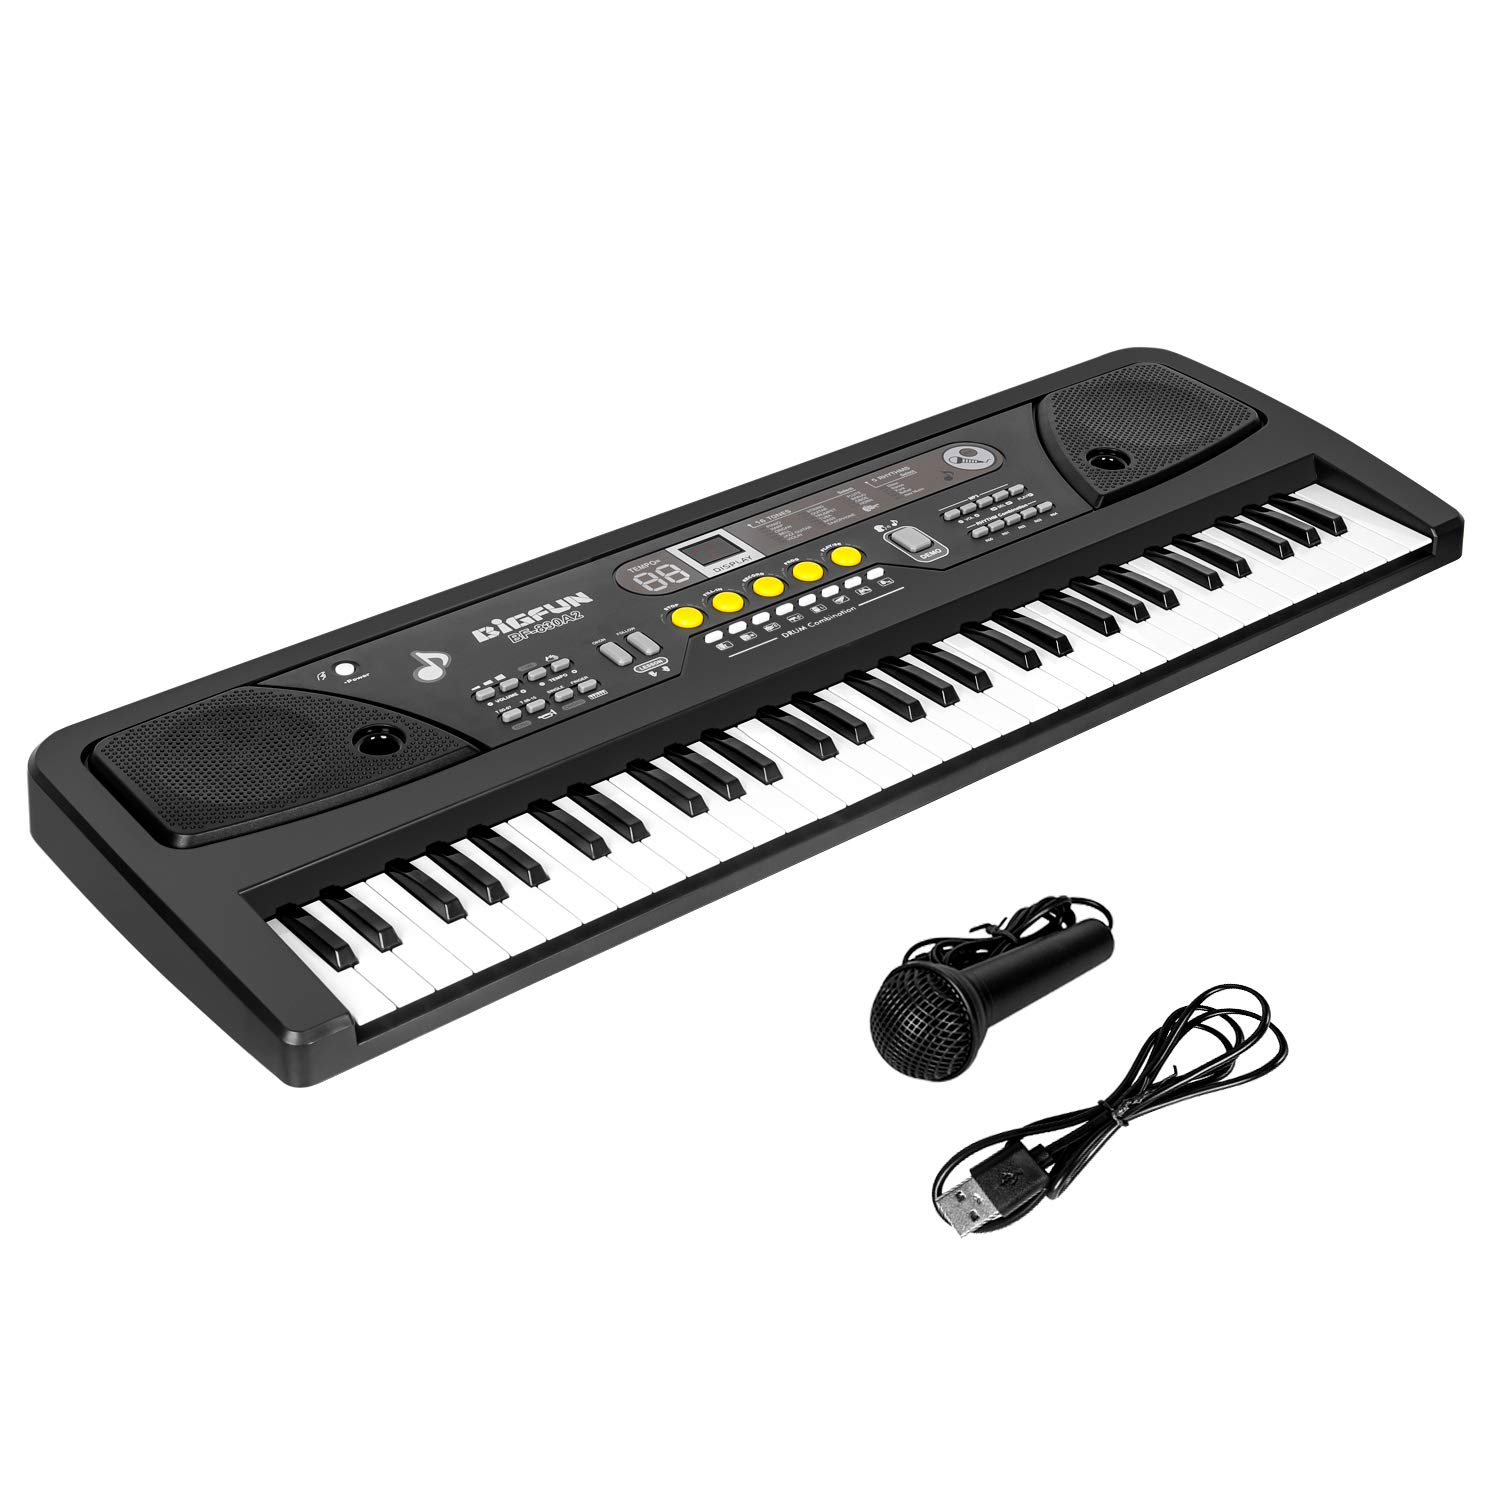 M SANMERSEN Kids Piano, 61 Keys Piano Keyboard with Microphone / MP3 Function Musical Instrument for Boys Girls Educational Music Keyboard Children Gift Toy for 3-8 Years Old